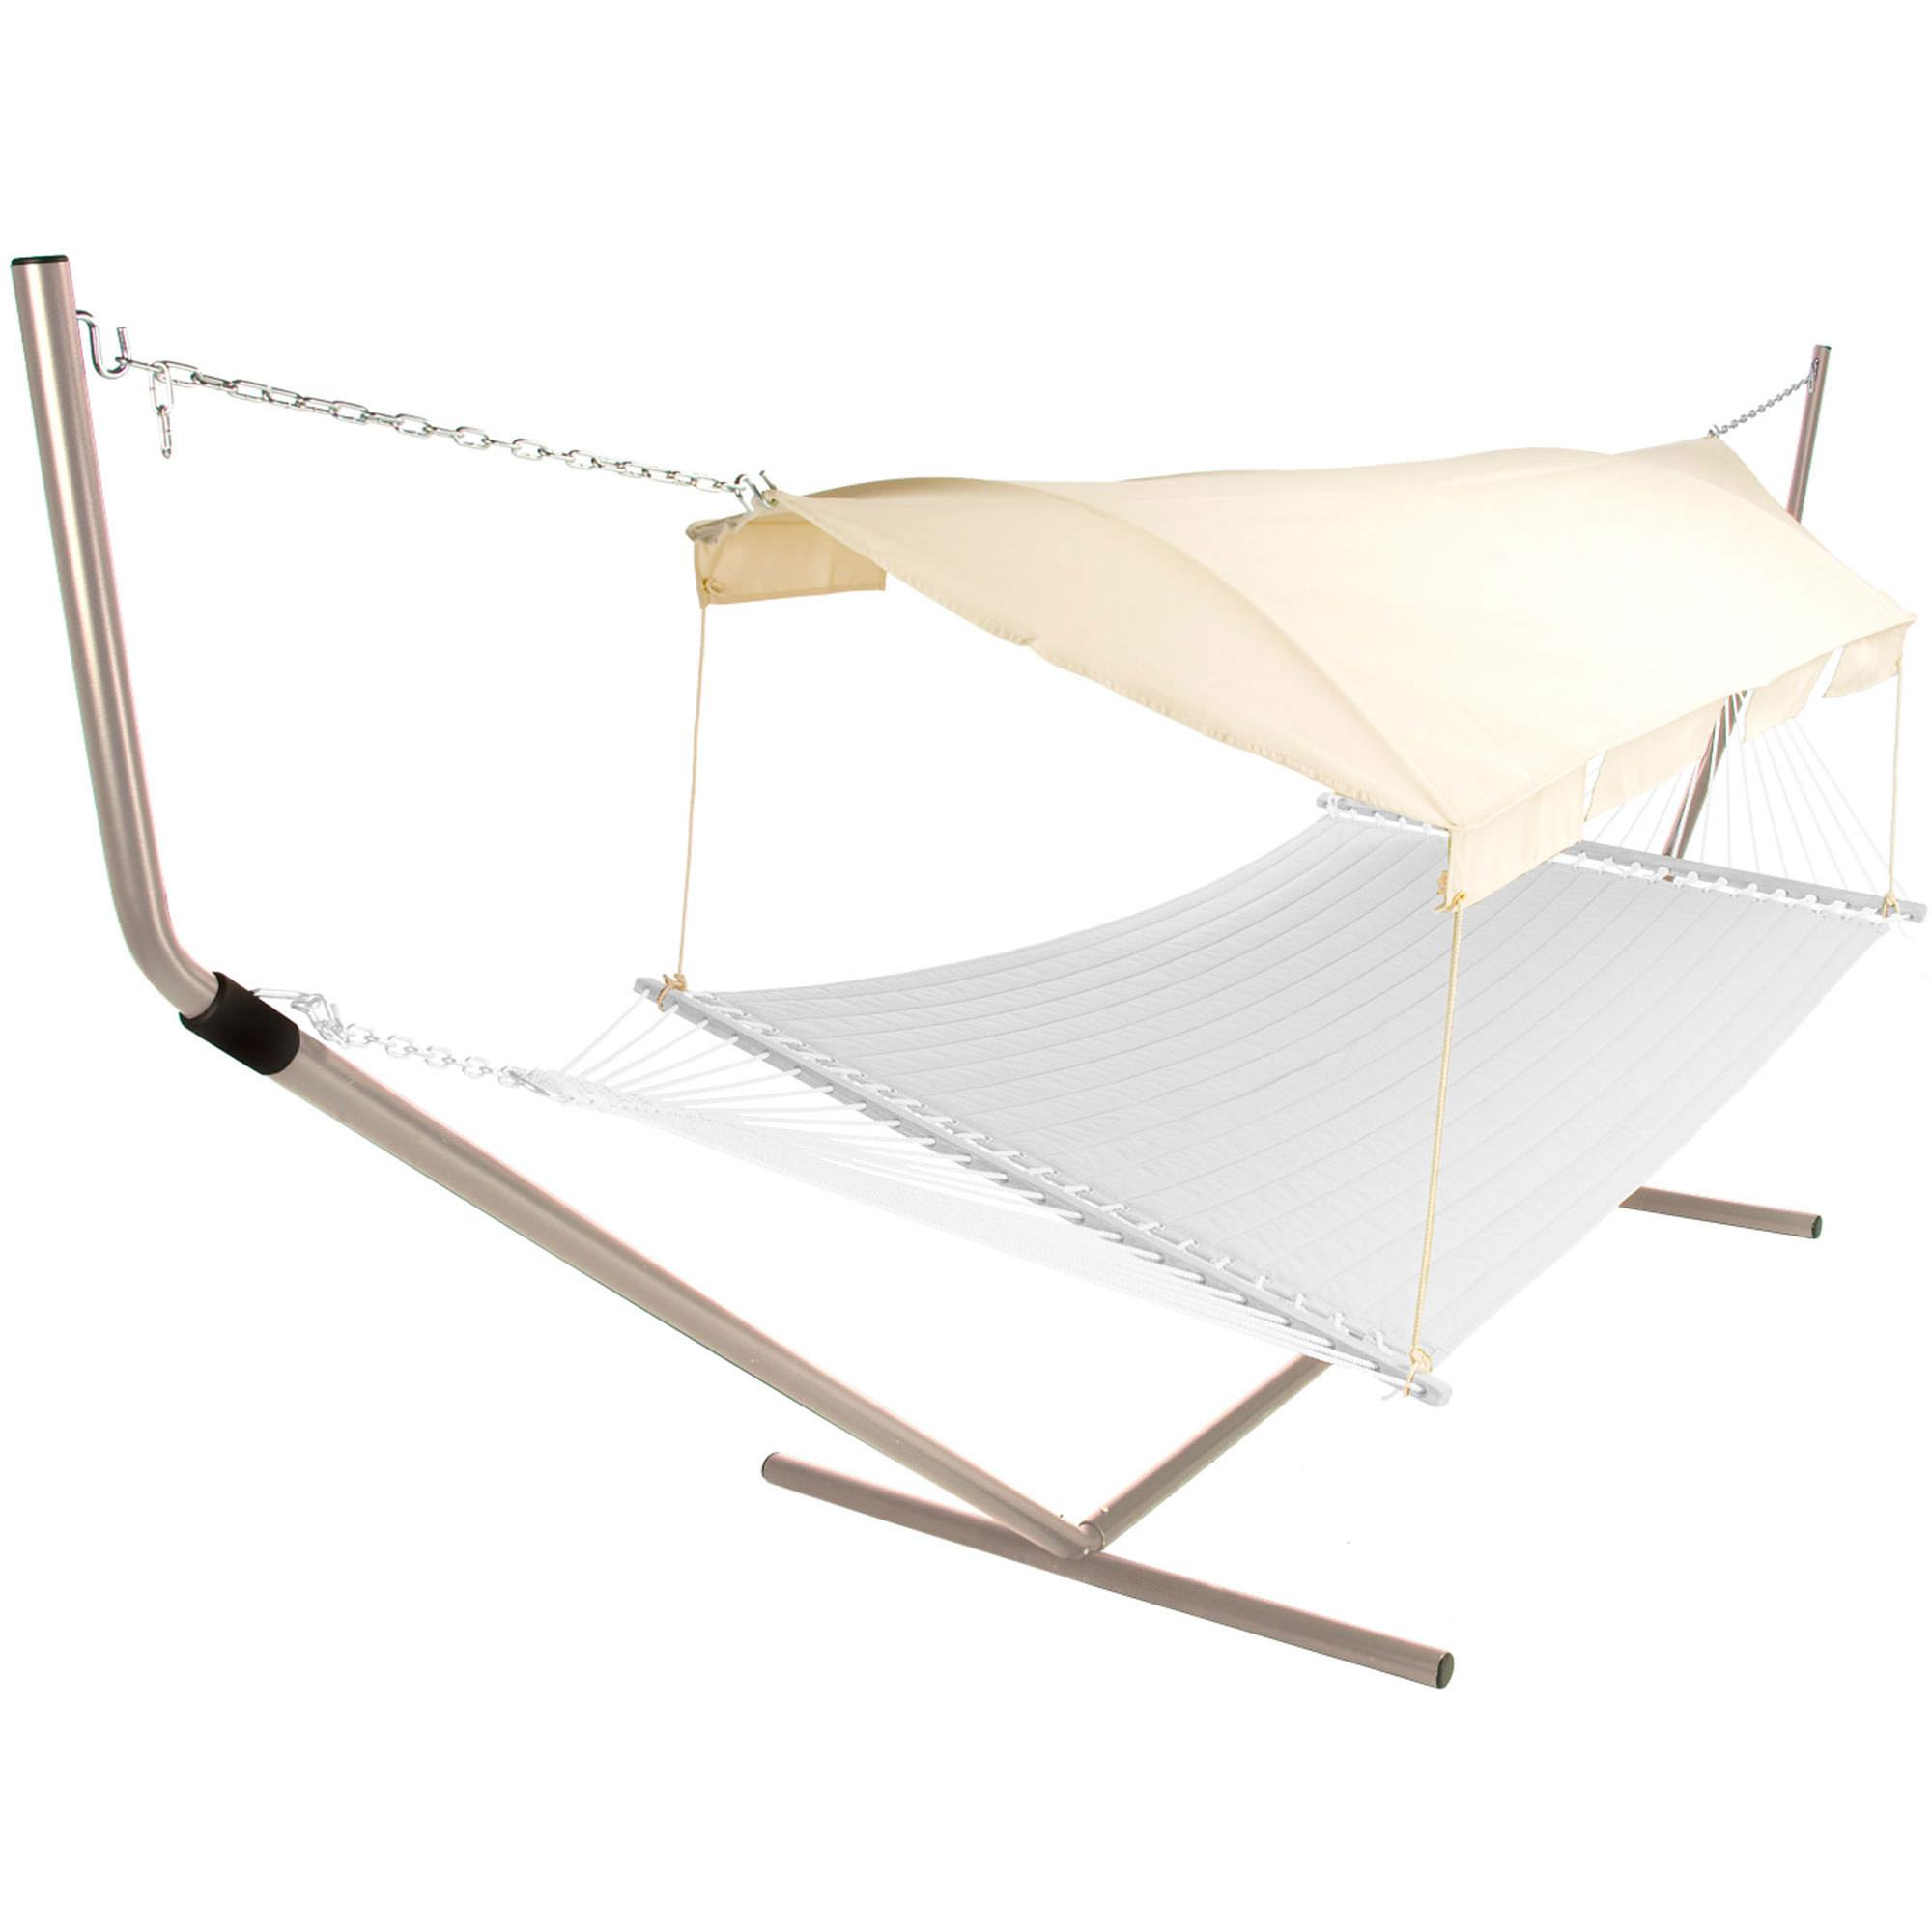 swinging designs garden replacement converting outdoor choice seats swing canopy best frame parts s hammock